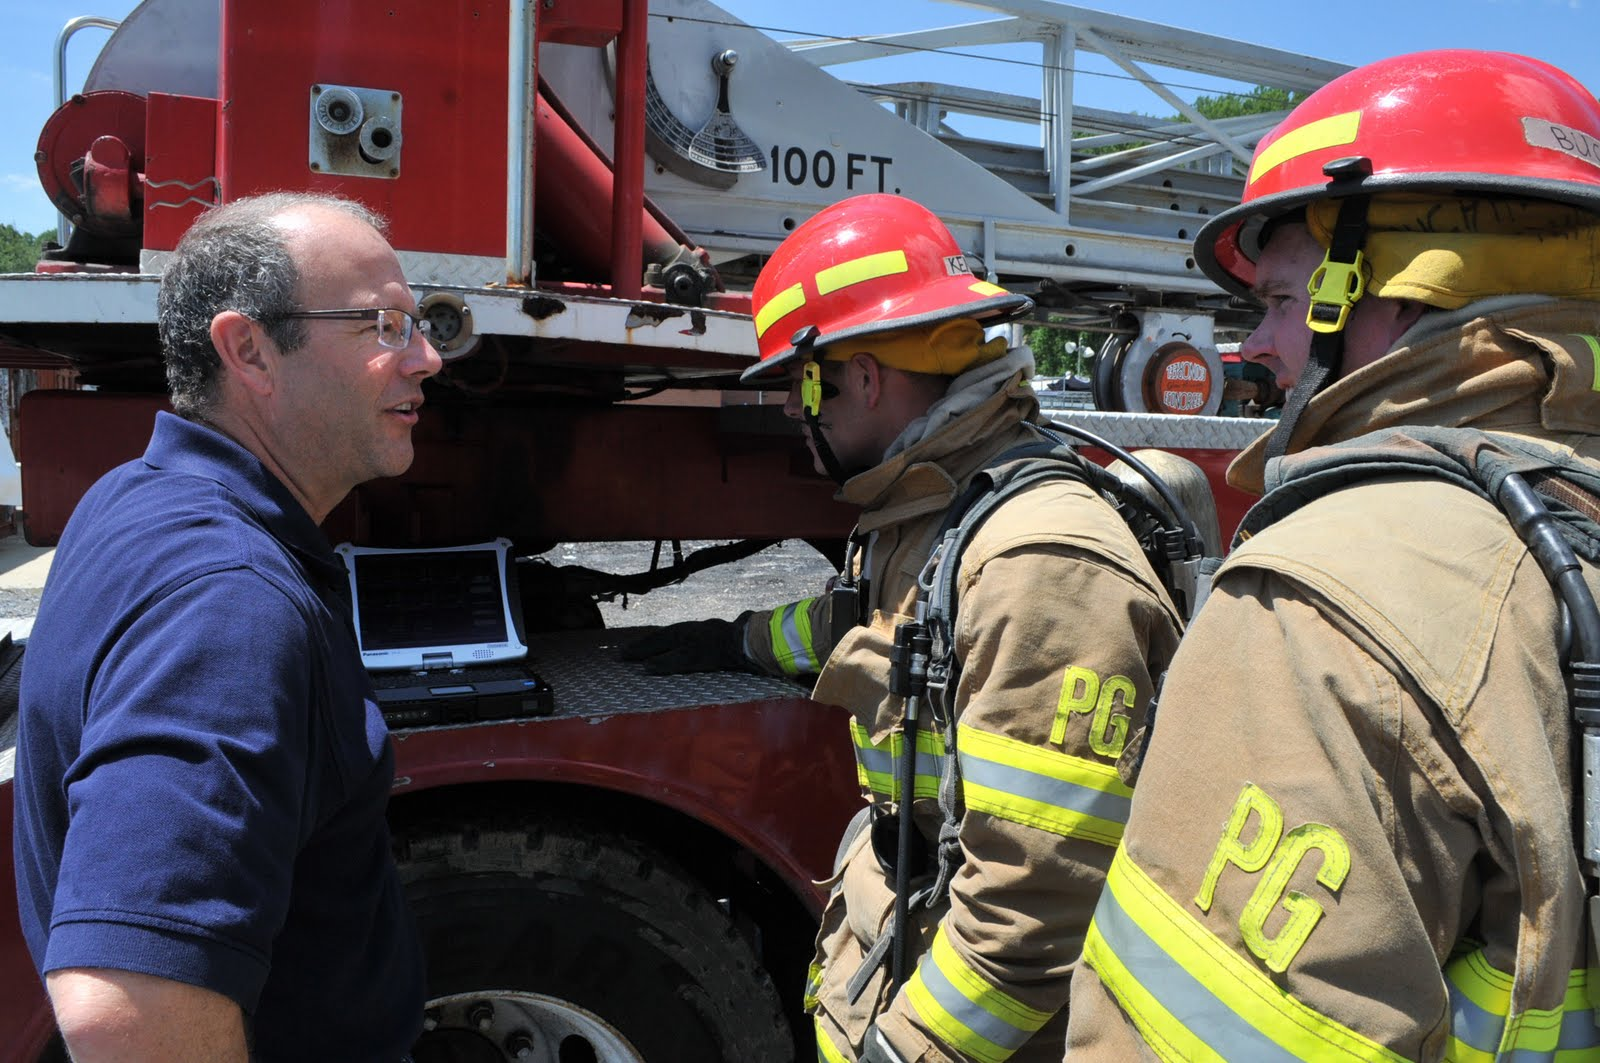 Prince George's County Fire/EMS Department: Physiological Status